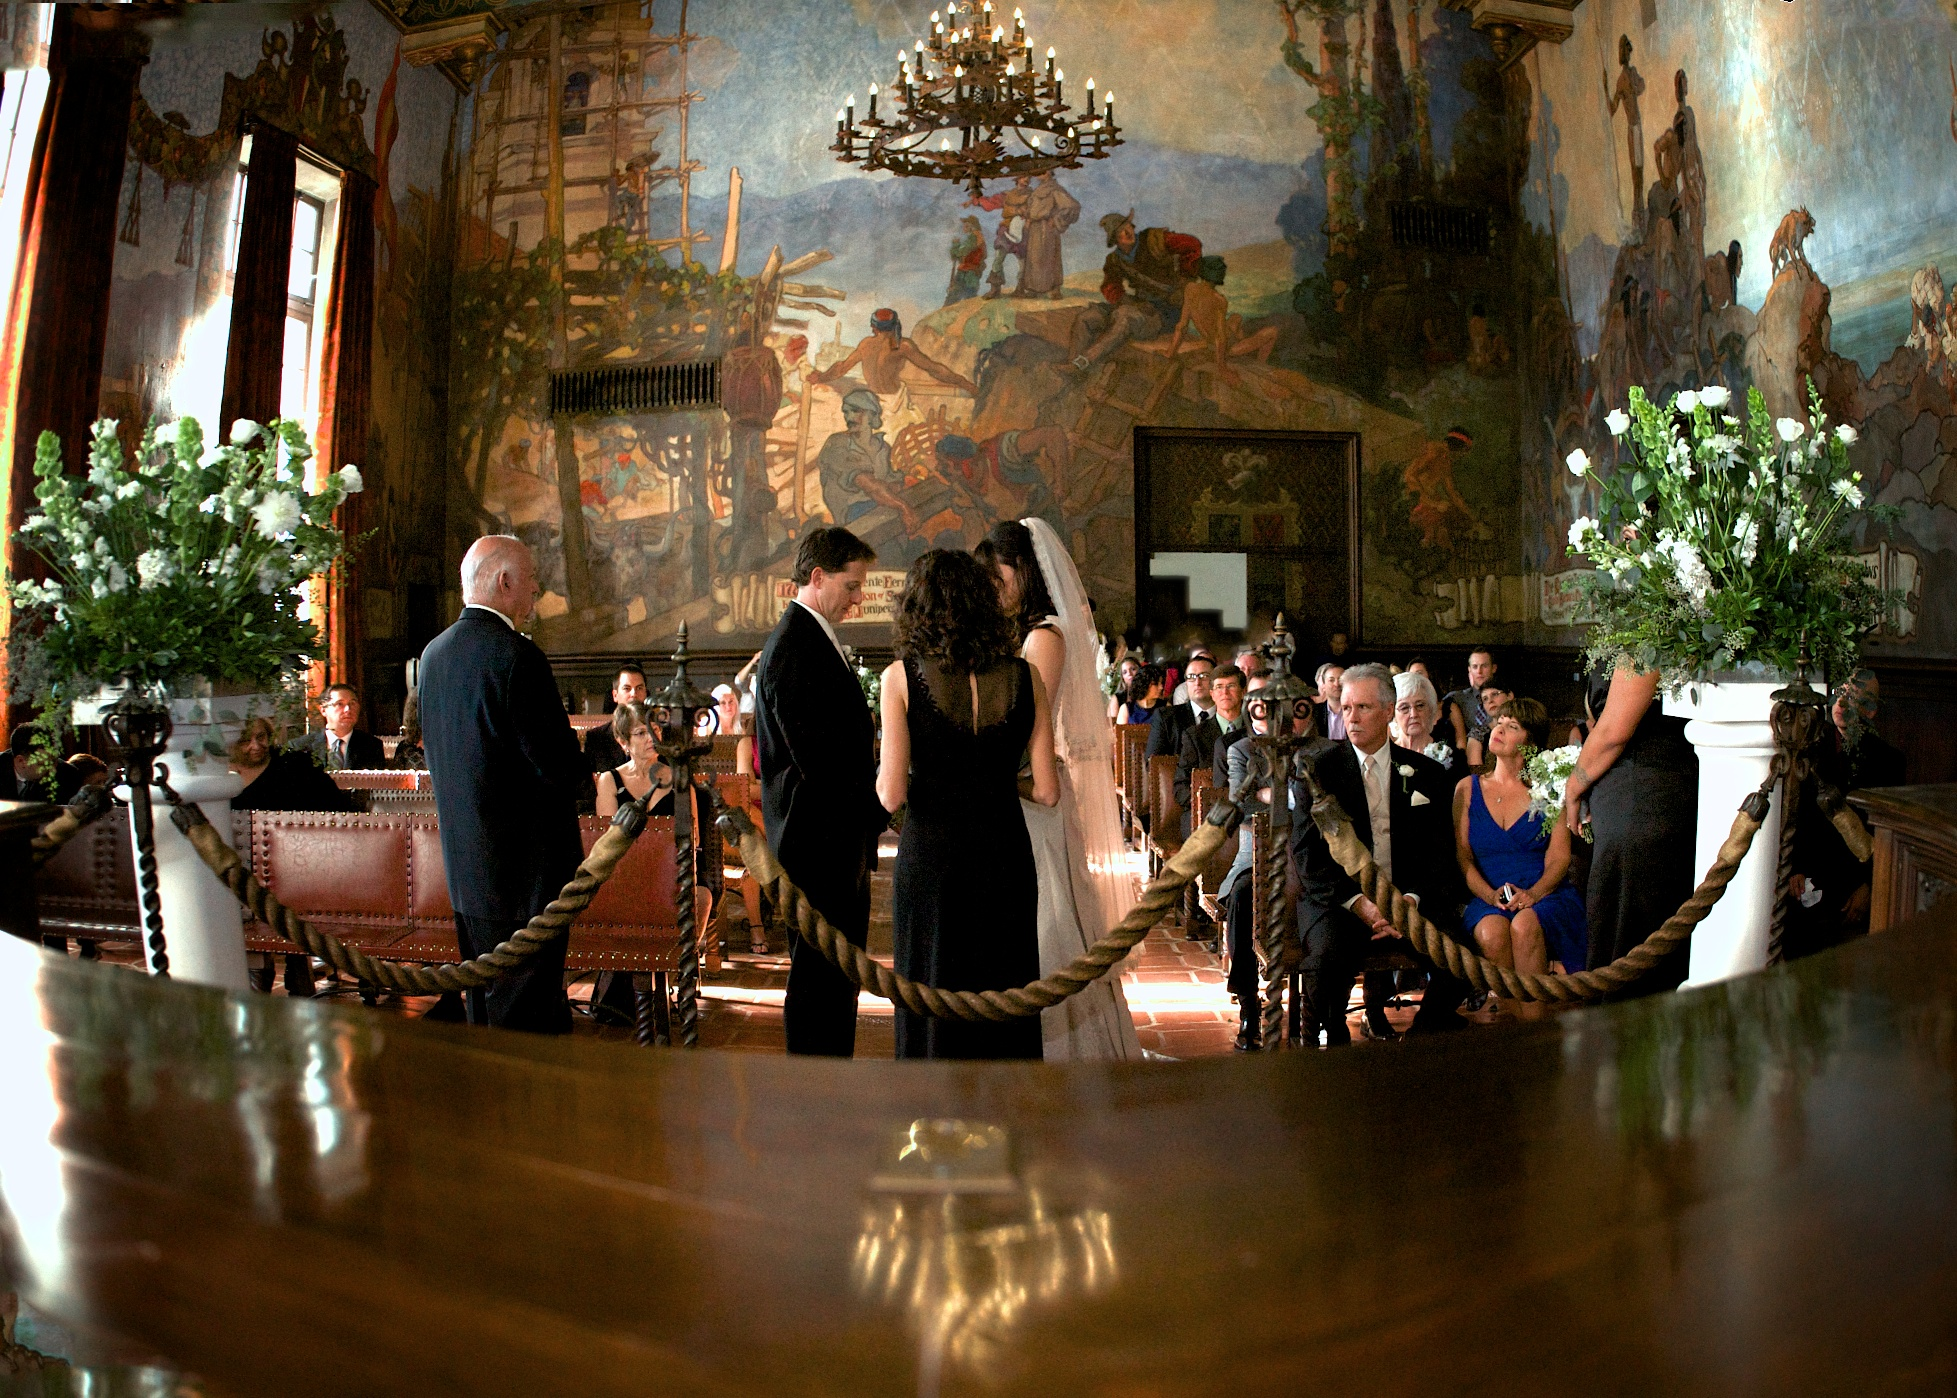 Santa barbara courthouse mural room wedding the maischside blog for Mural room santa barbara